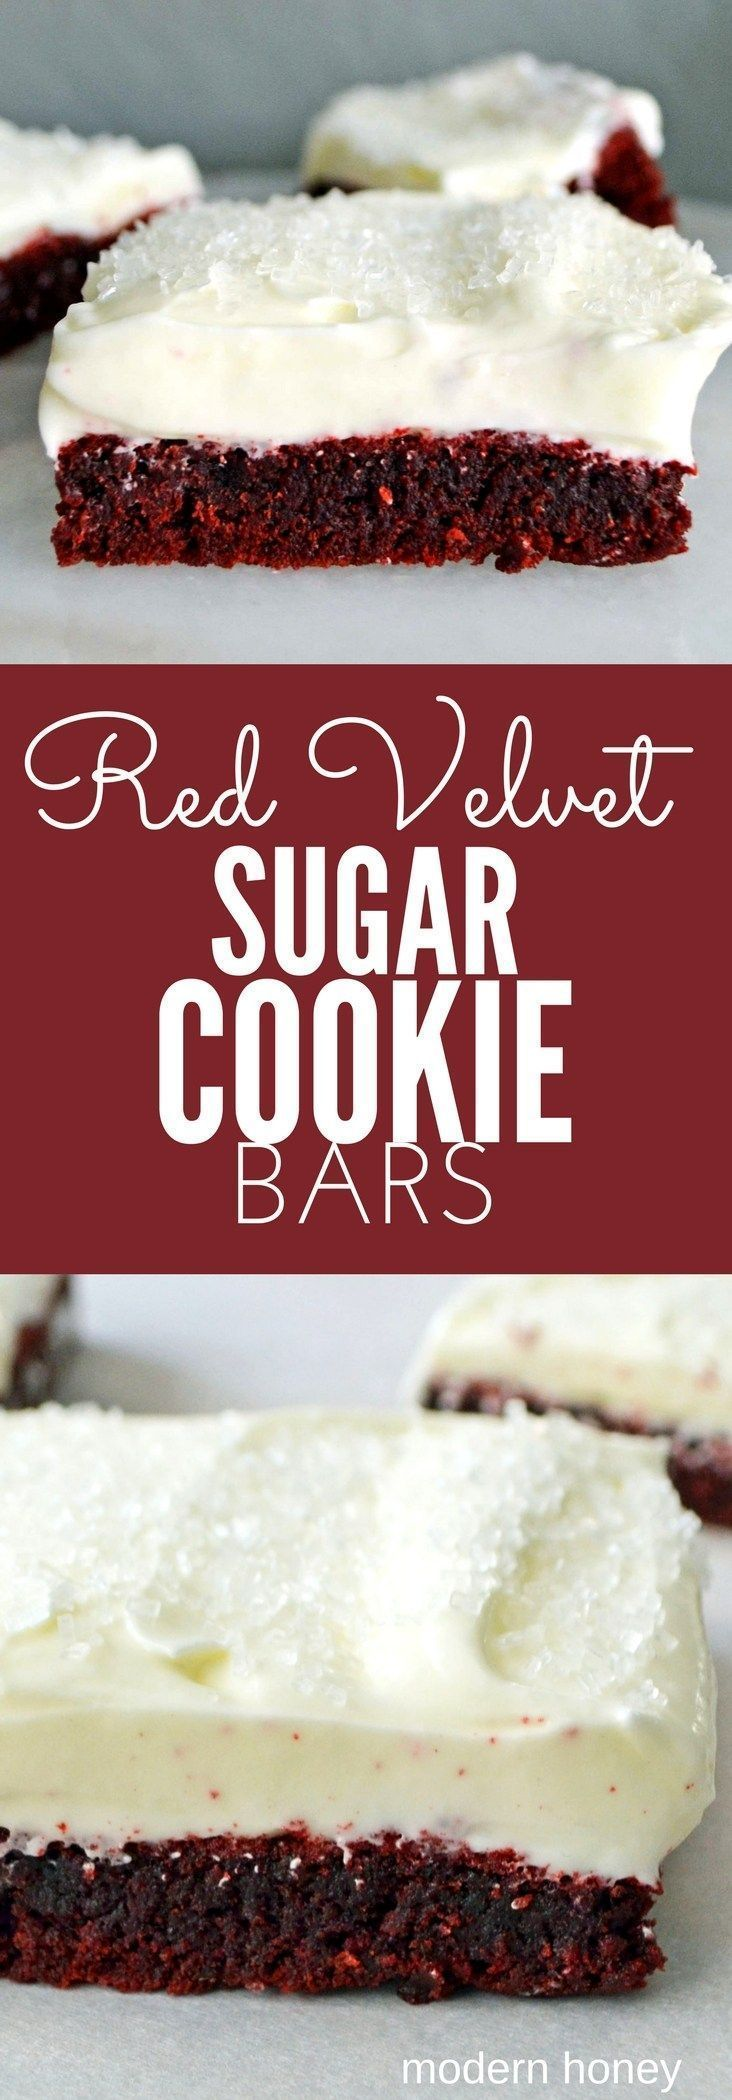 Red Velvet Sugar Cookie Bars. Soft red velvet cookie bars topped with sweet cream cheese frosting. The taste of red velvet cake in a bar...without all the work. www.modernhoney.com